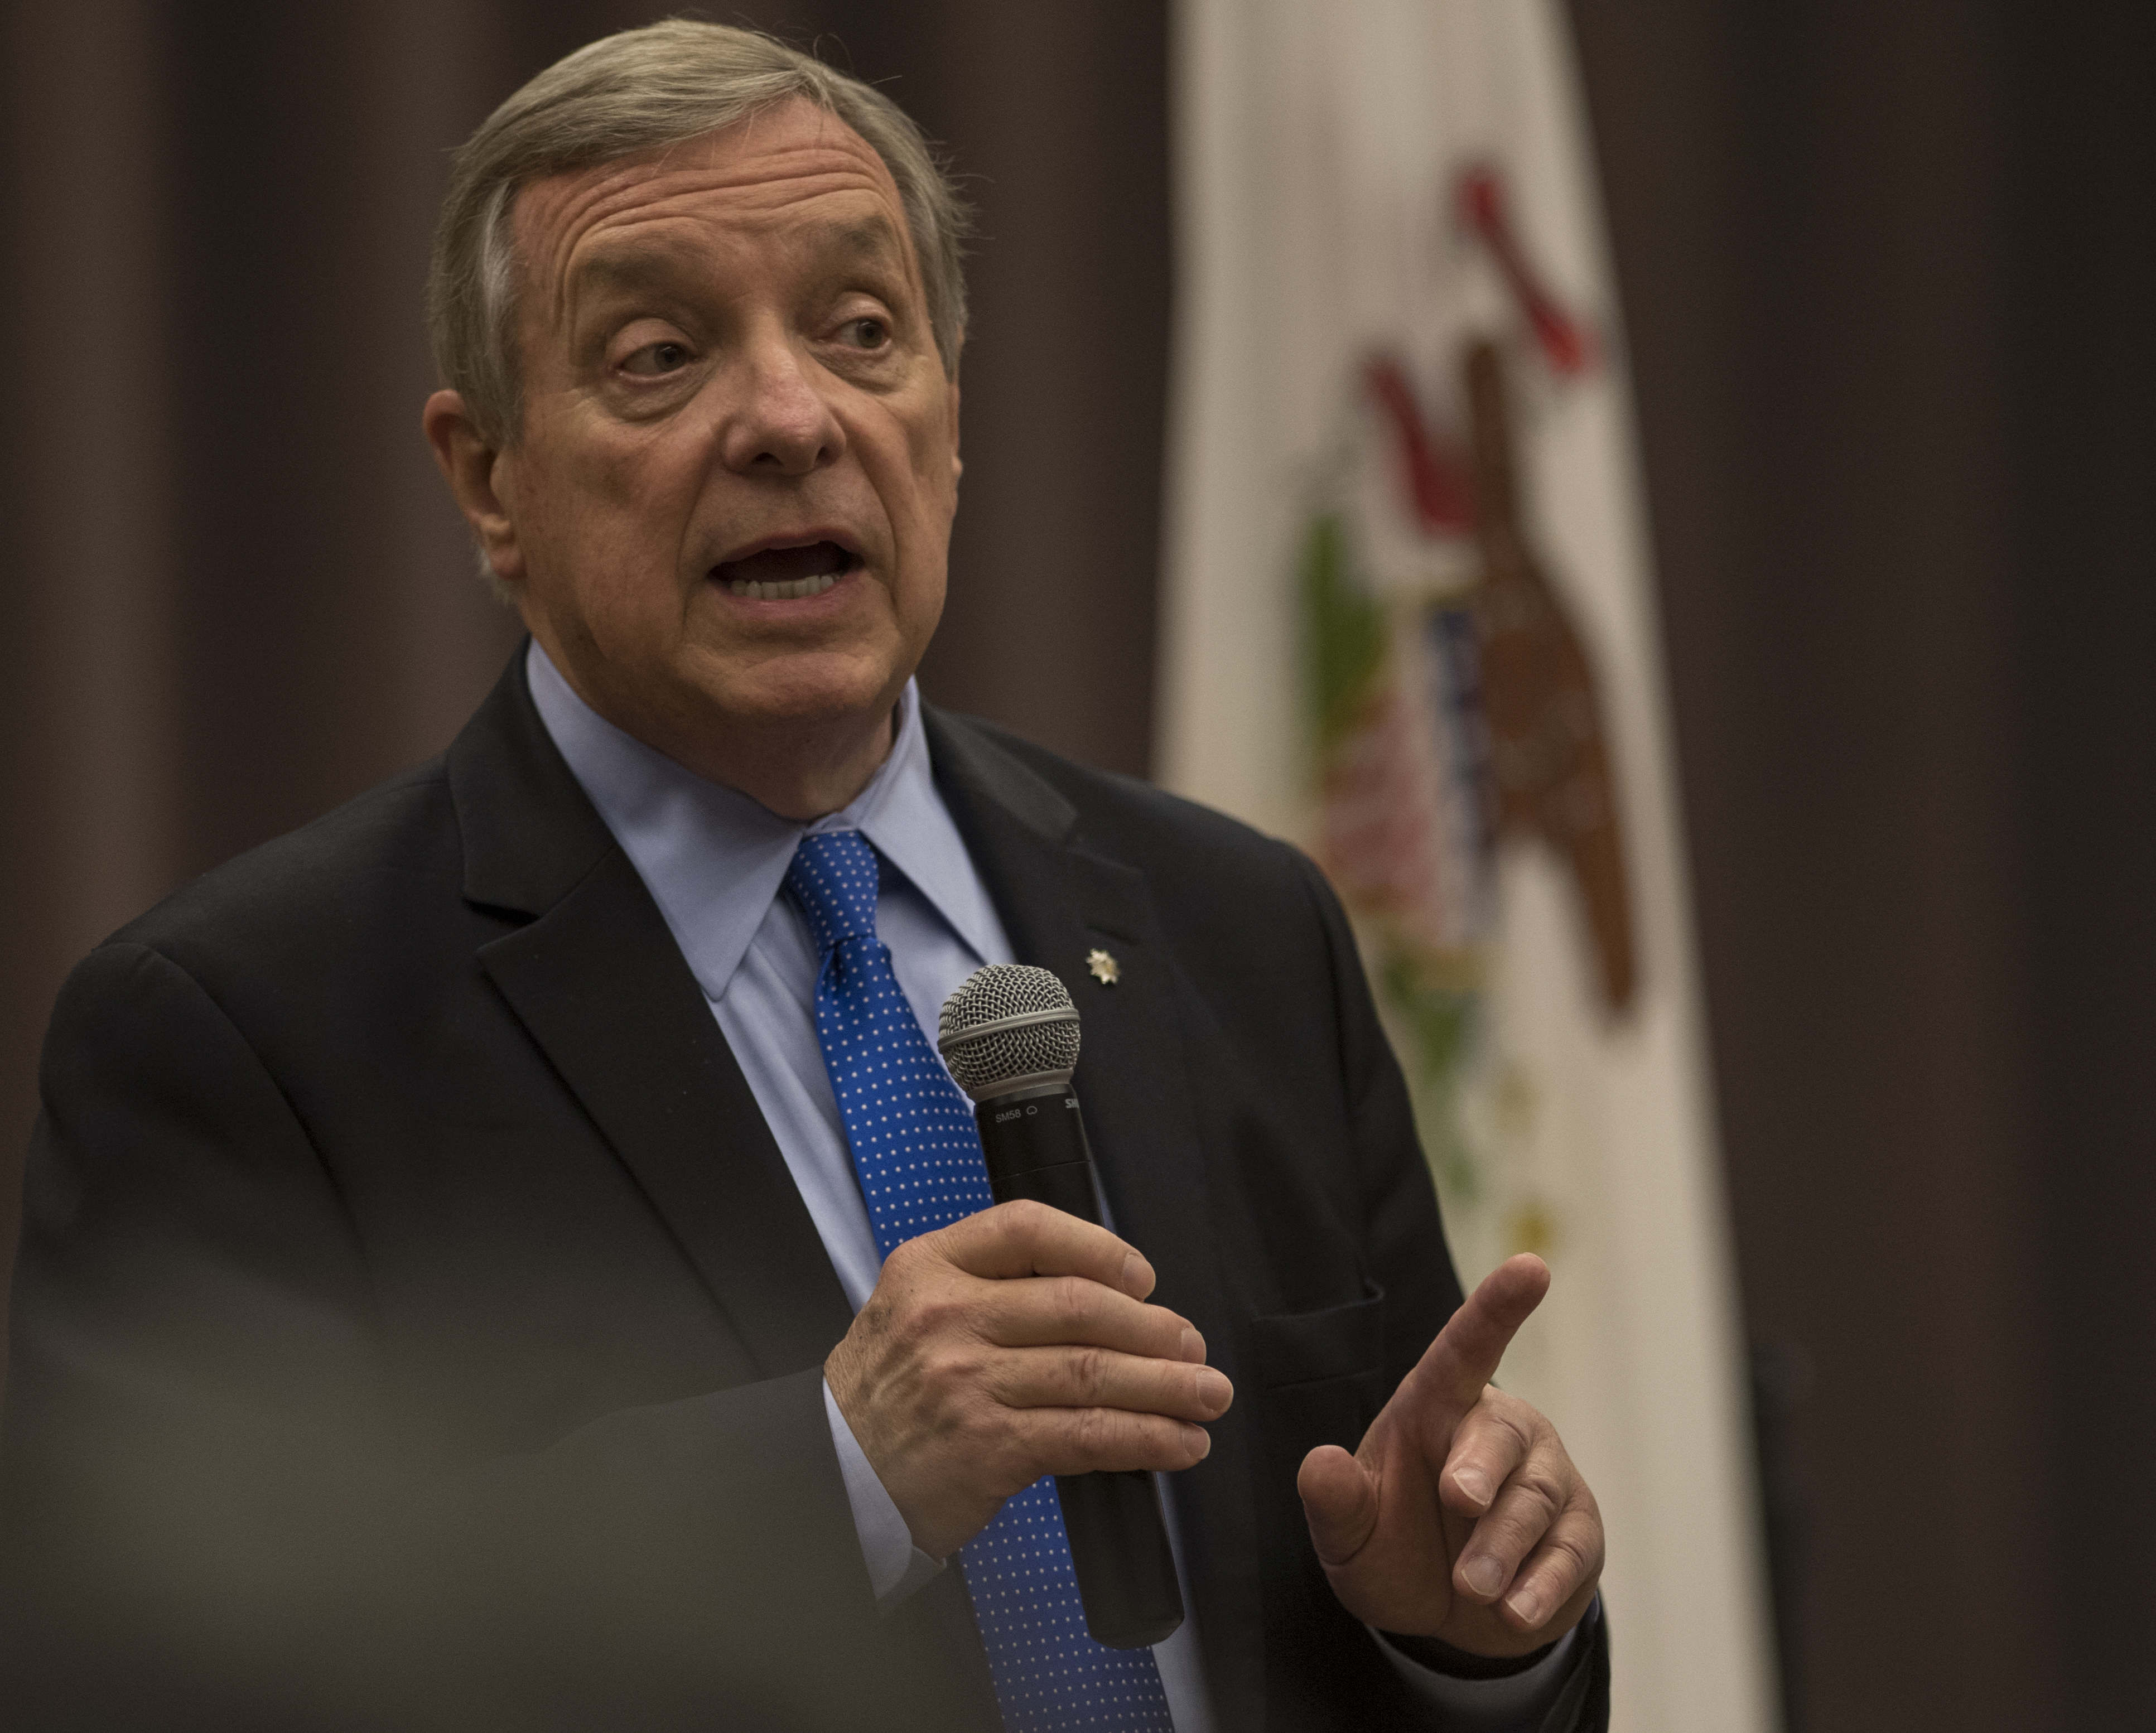 Sen. Dick Durbin answers a question Friday, April 21, 2017, during a town hall meeting in the university's Lesar Law Building. About 140 people came to hear the senator discuss national, regional and state issues. (Bill Lukitsch | @lukitsbill)